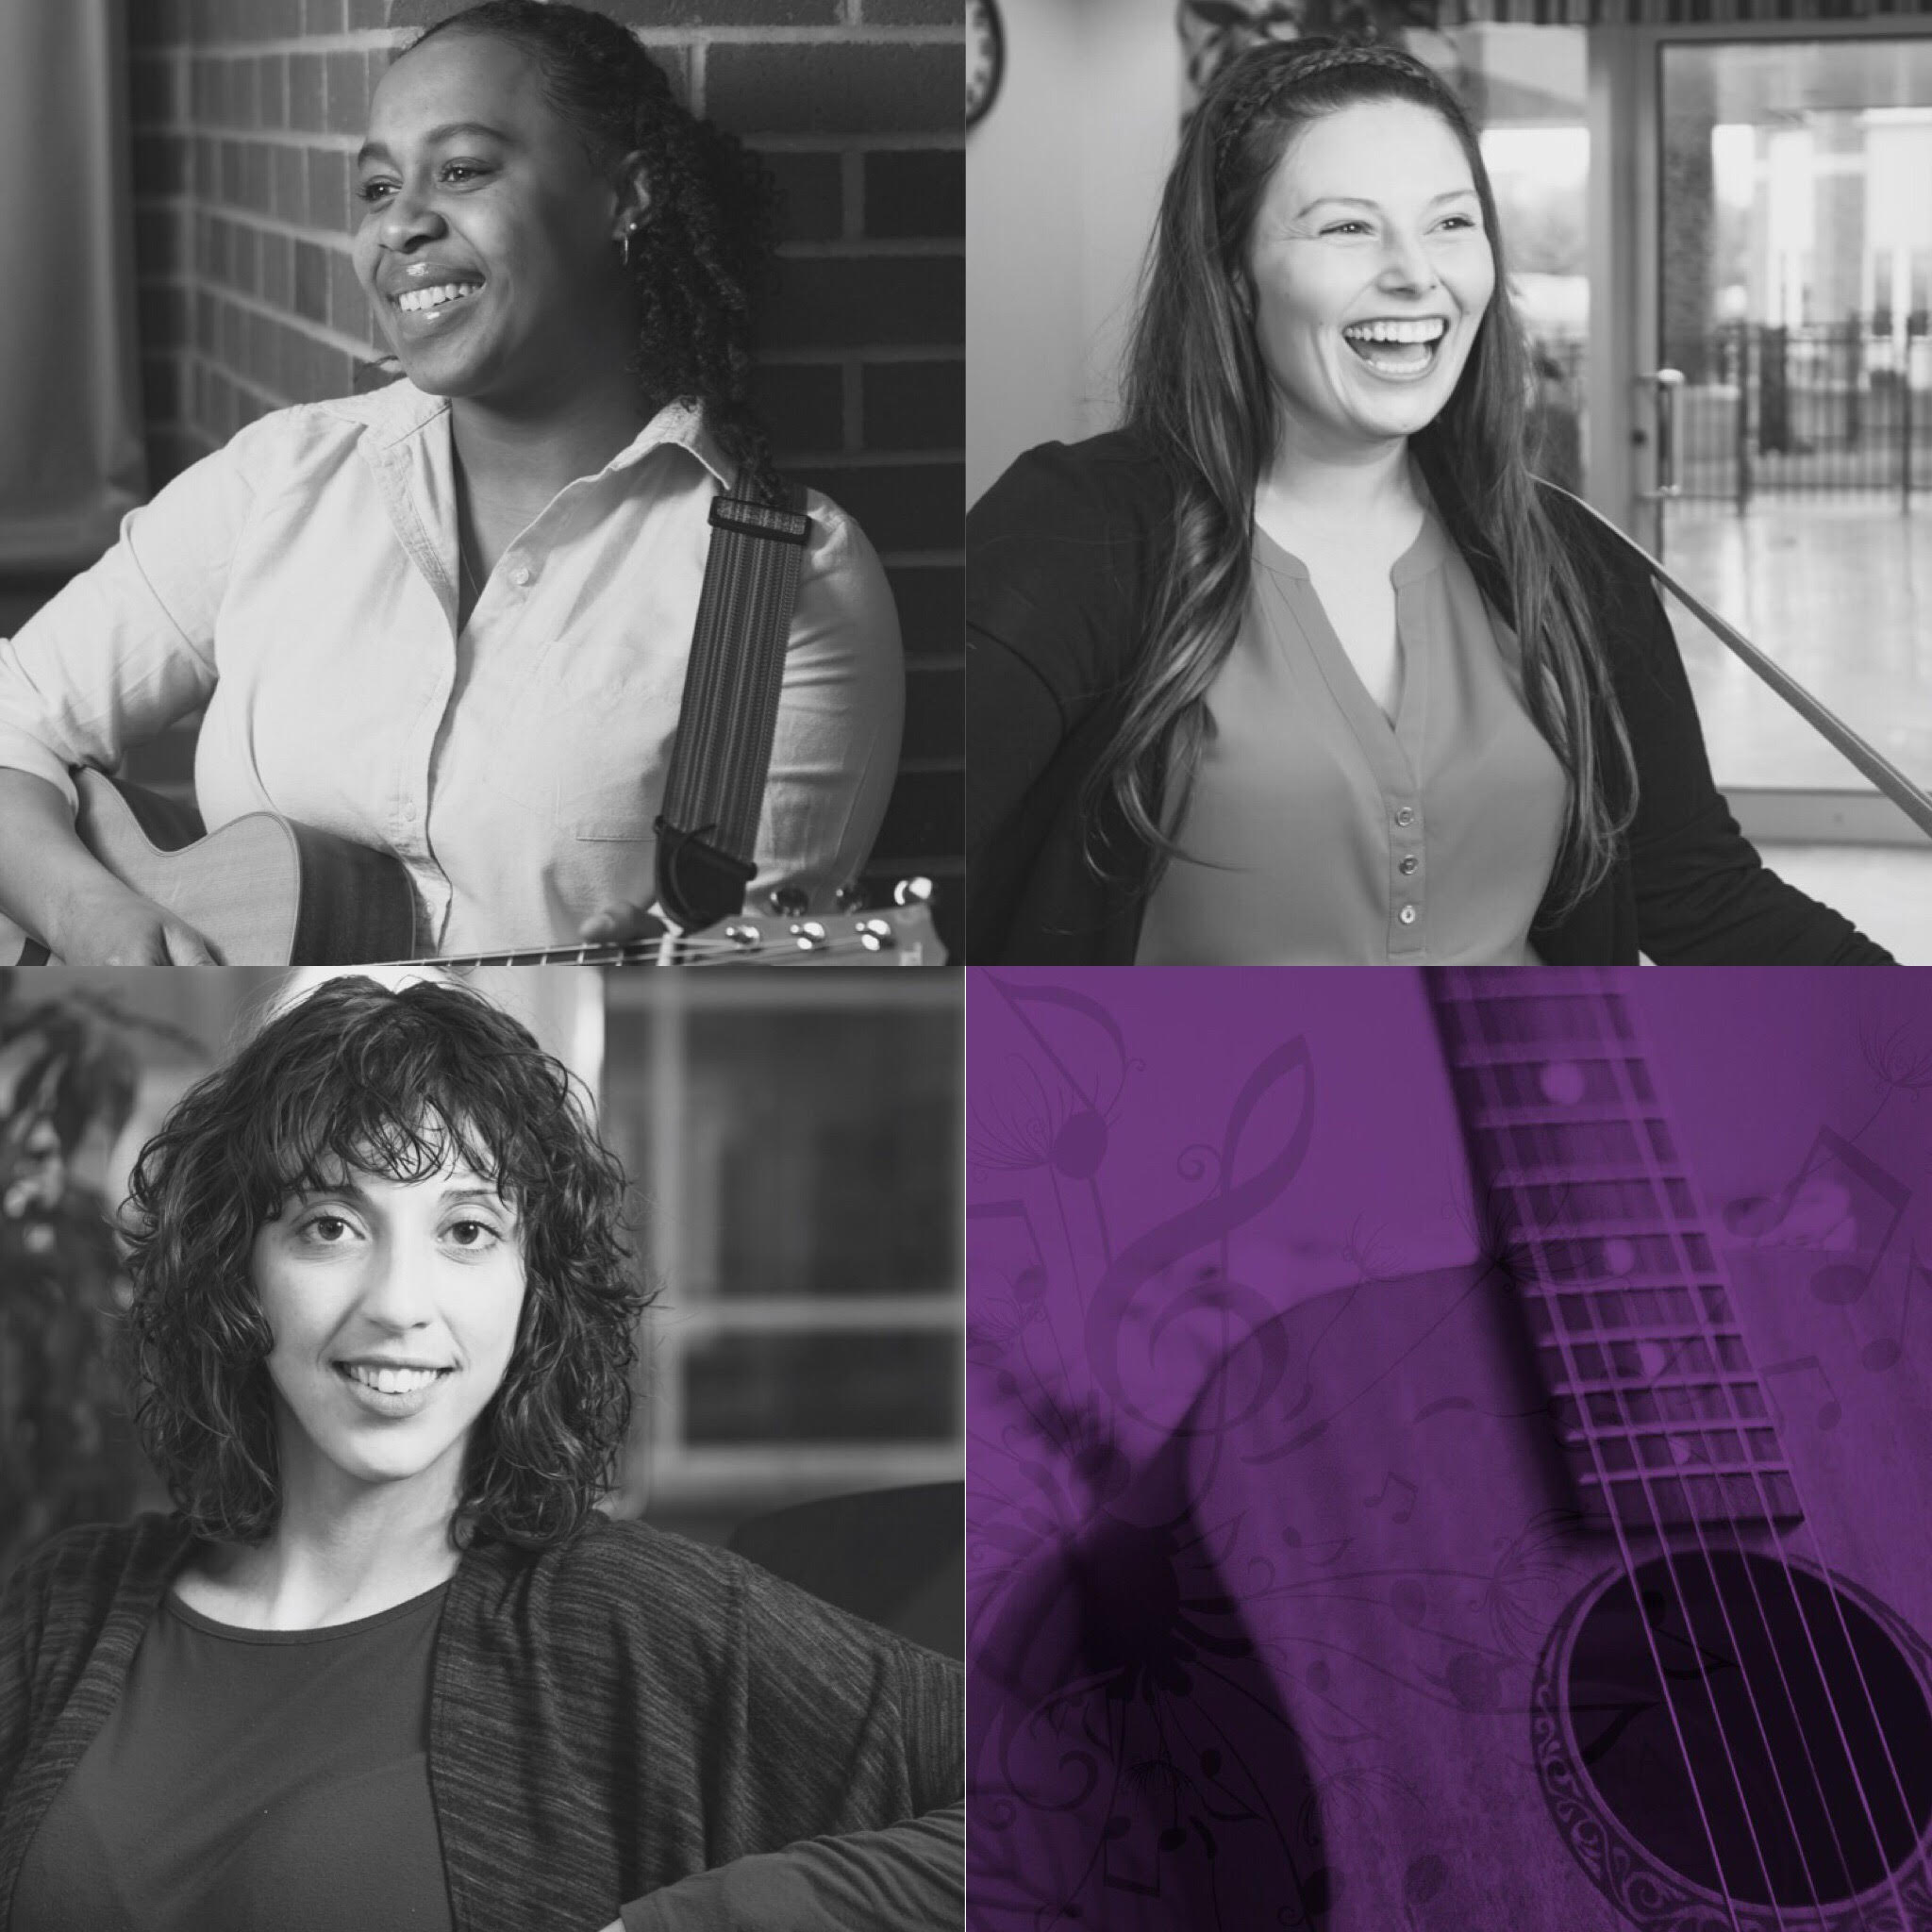 Mackenzie Costron. Hayley Francis Cann. Kimberly Dolan. Accredited Music Therapist. Registered Counselling Therapist. Masters of Music Therapy. Neurologic Music Therapist. Find Your Voice Music Therapy. Kingston, Ontario. Halifax, Nova Scotia.